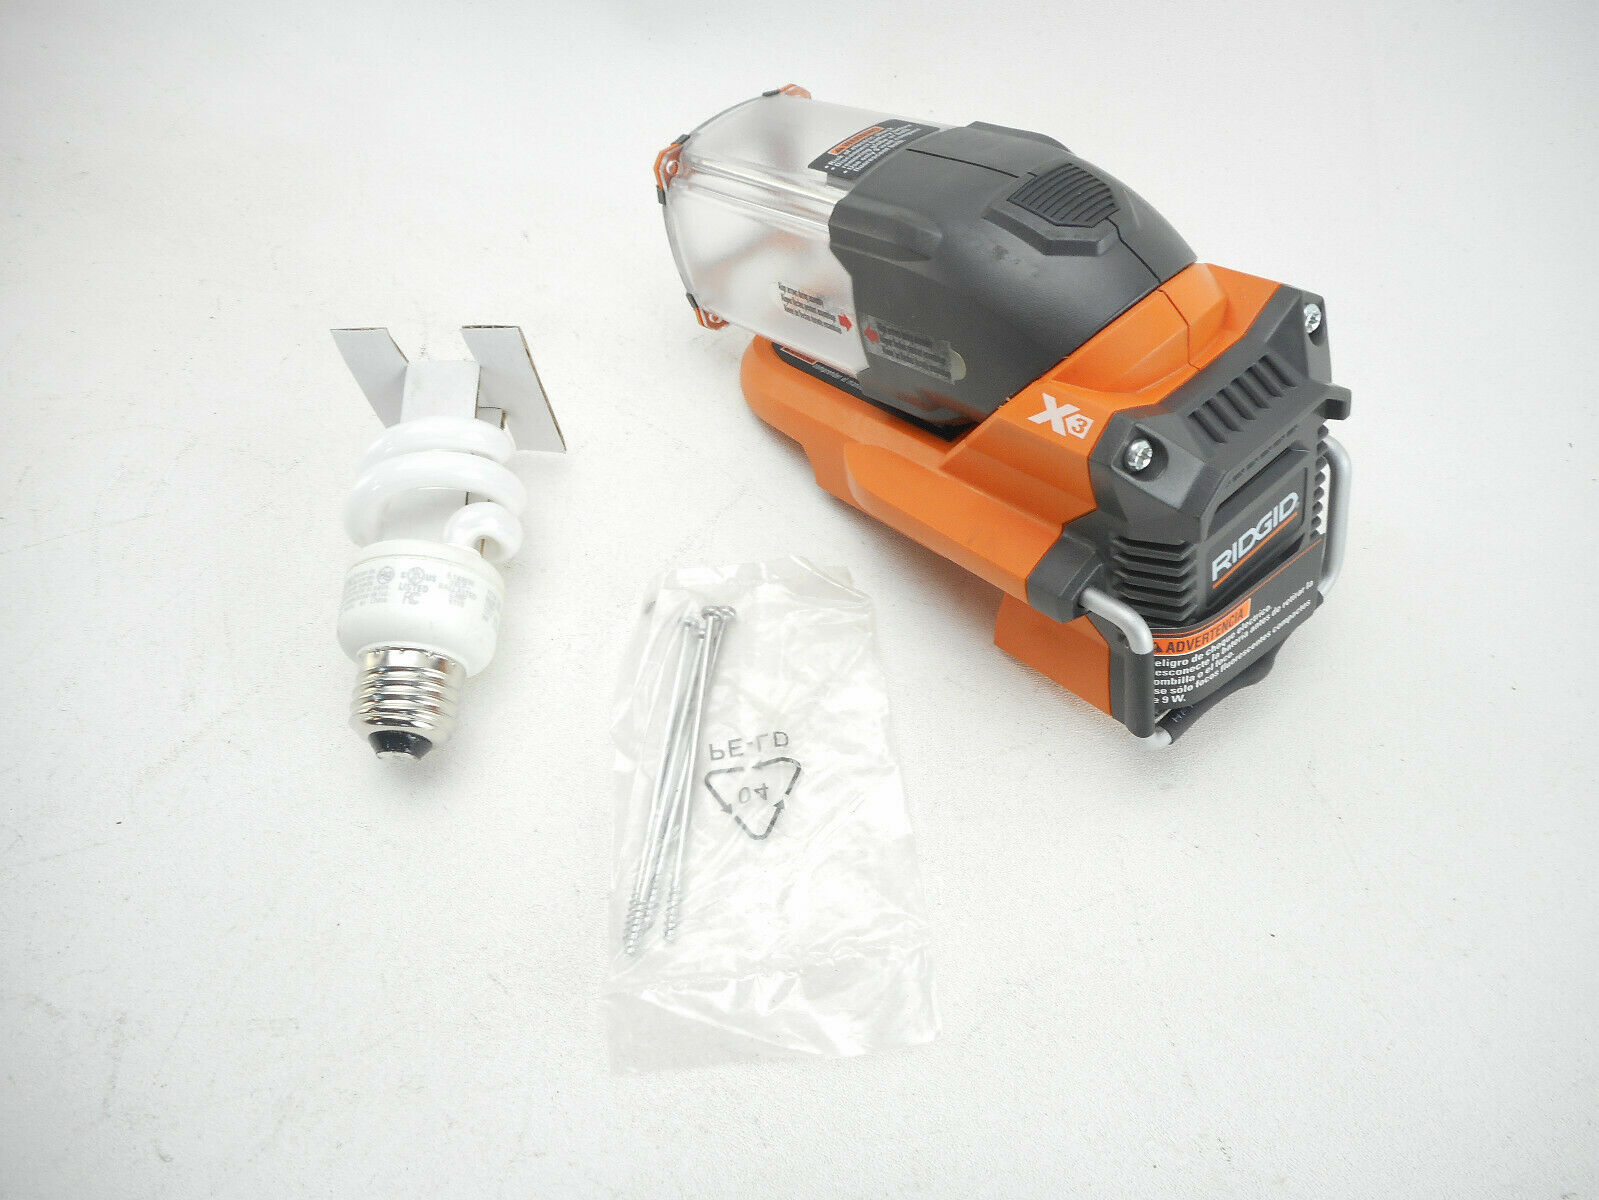 Nuevo Genuino Original Equipment Manufacturer Ridgid 987033001 Linterna-R869 Pieza De Repuesto